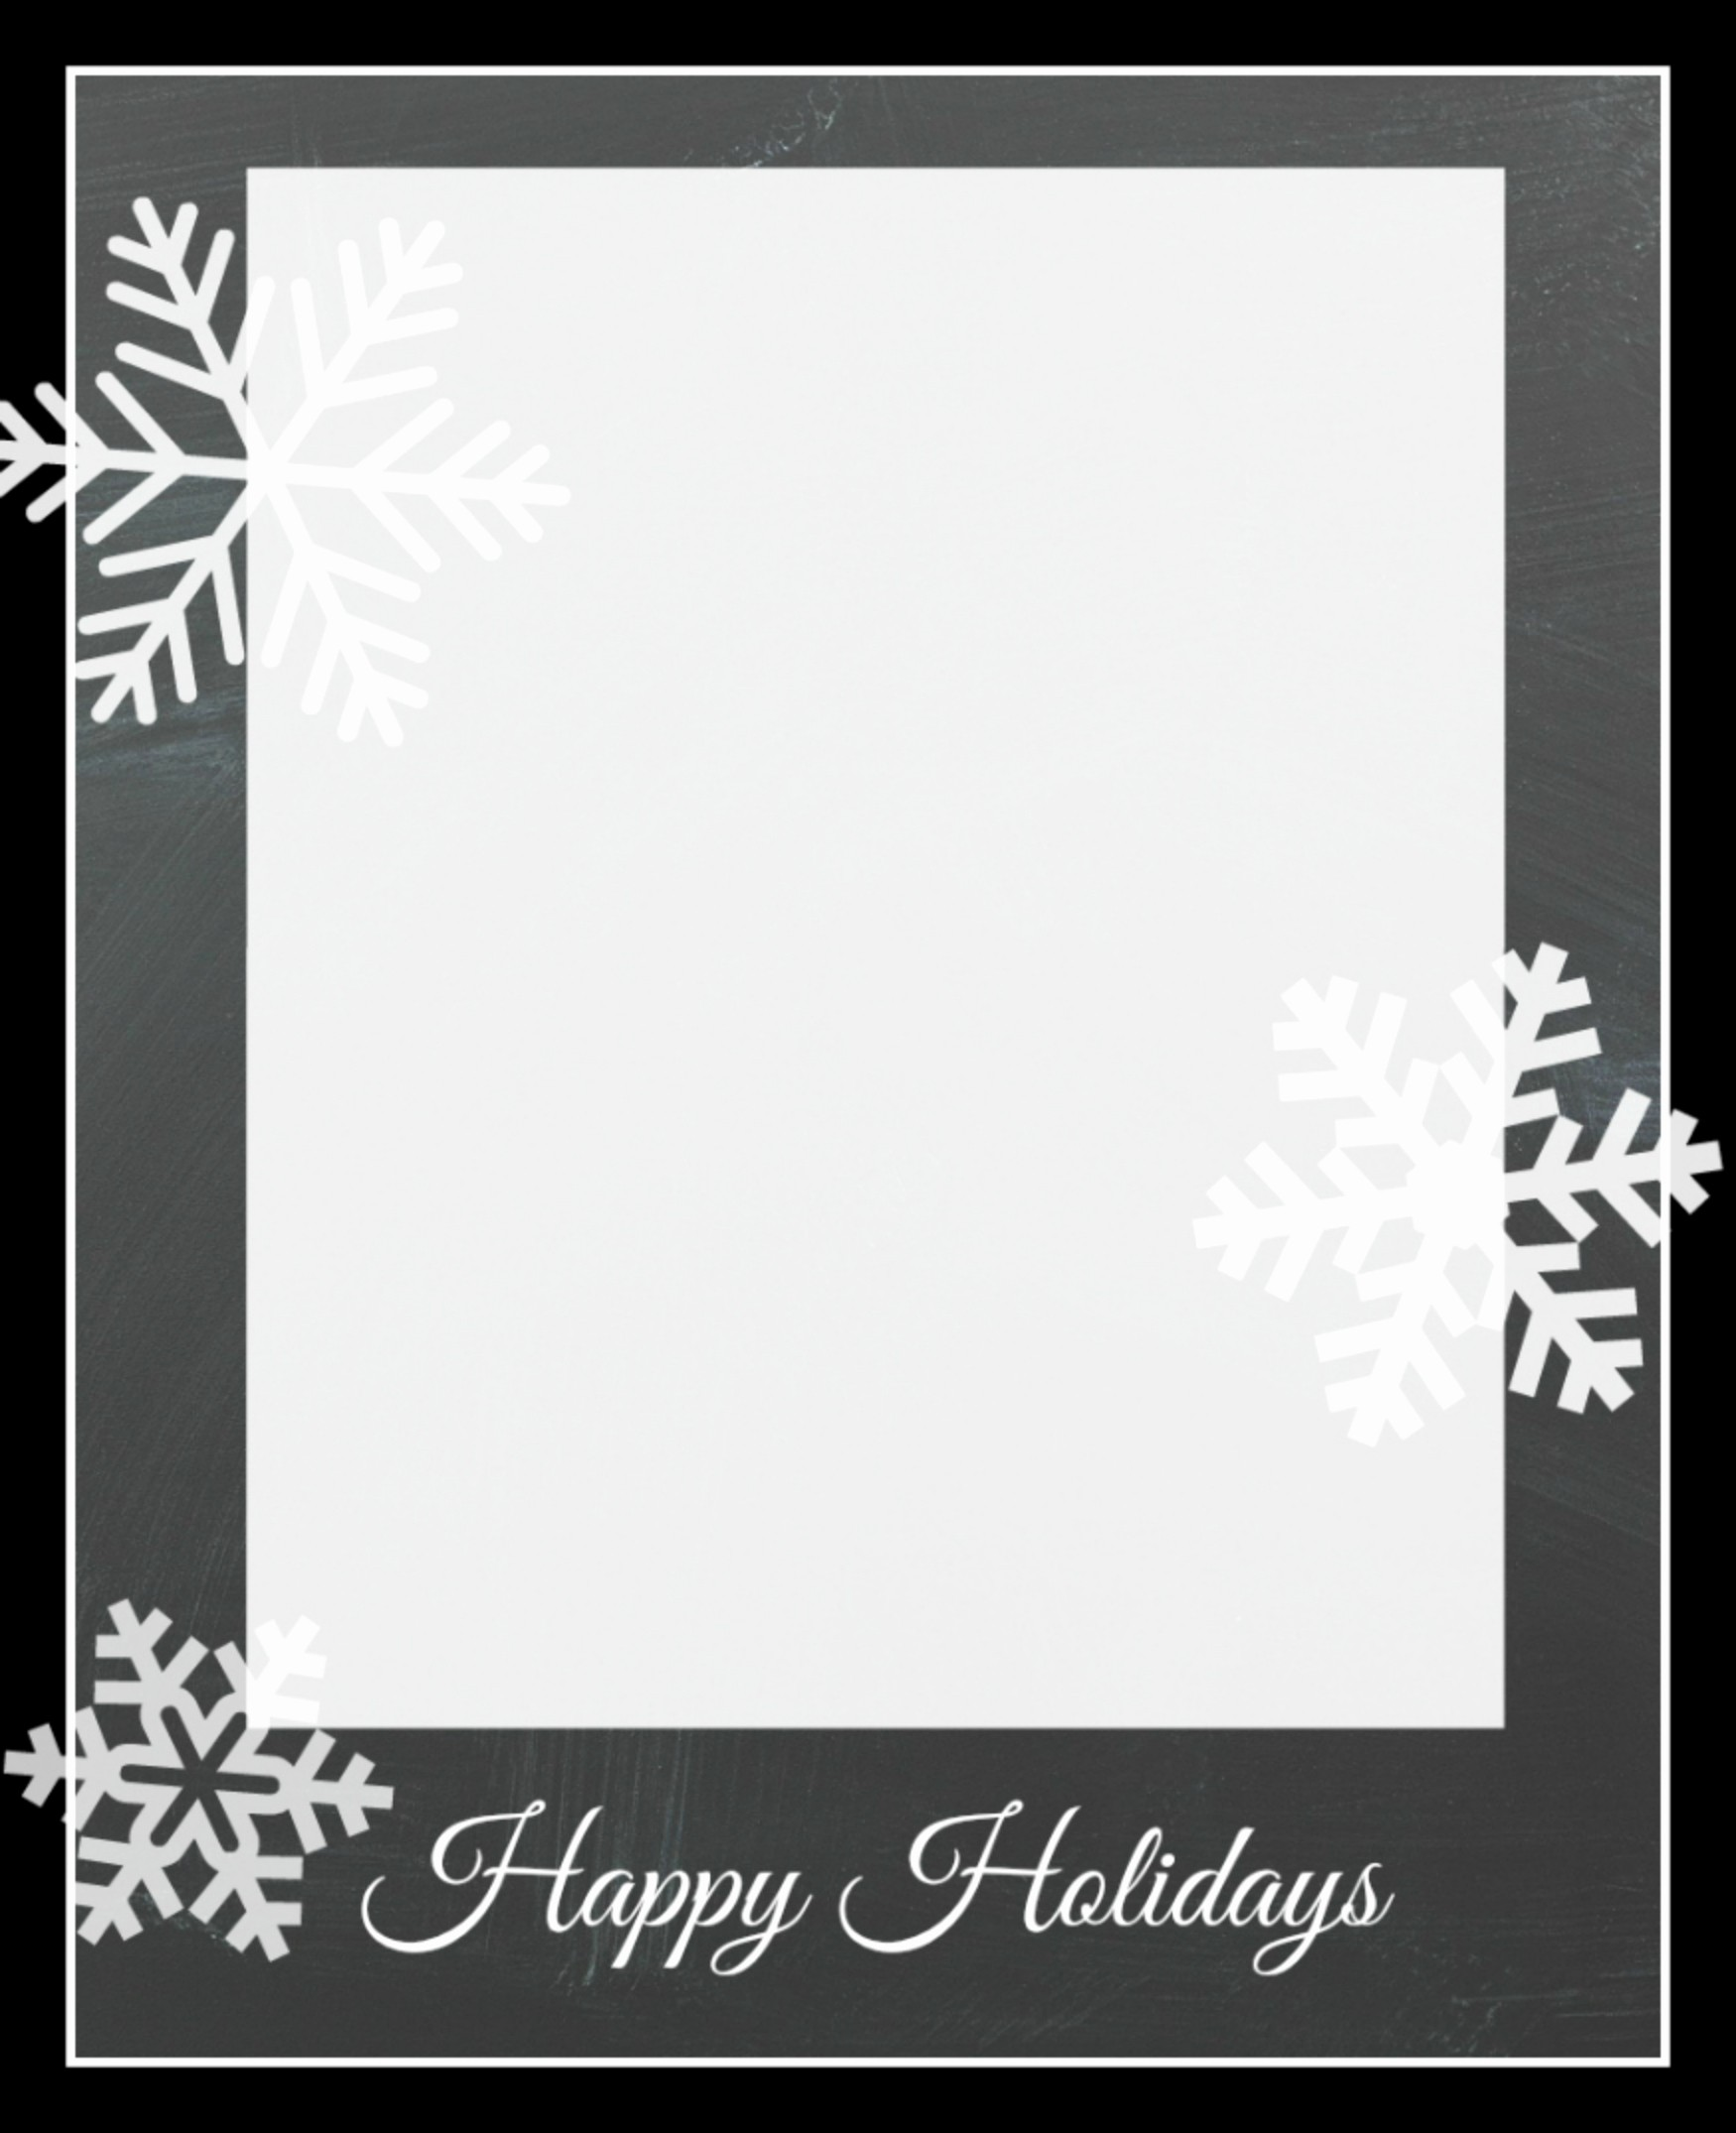 Free Christmas Template for Word Inspirational Free Christmas Card Templates Crazy Little Projects